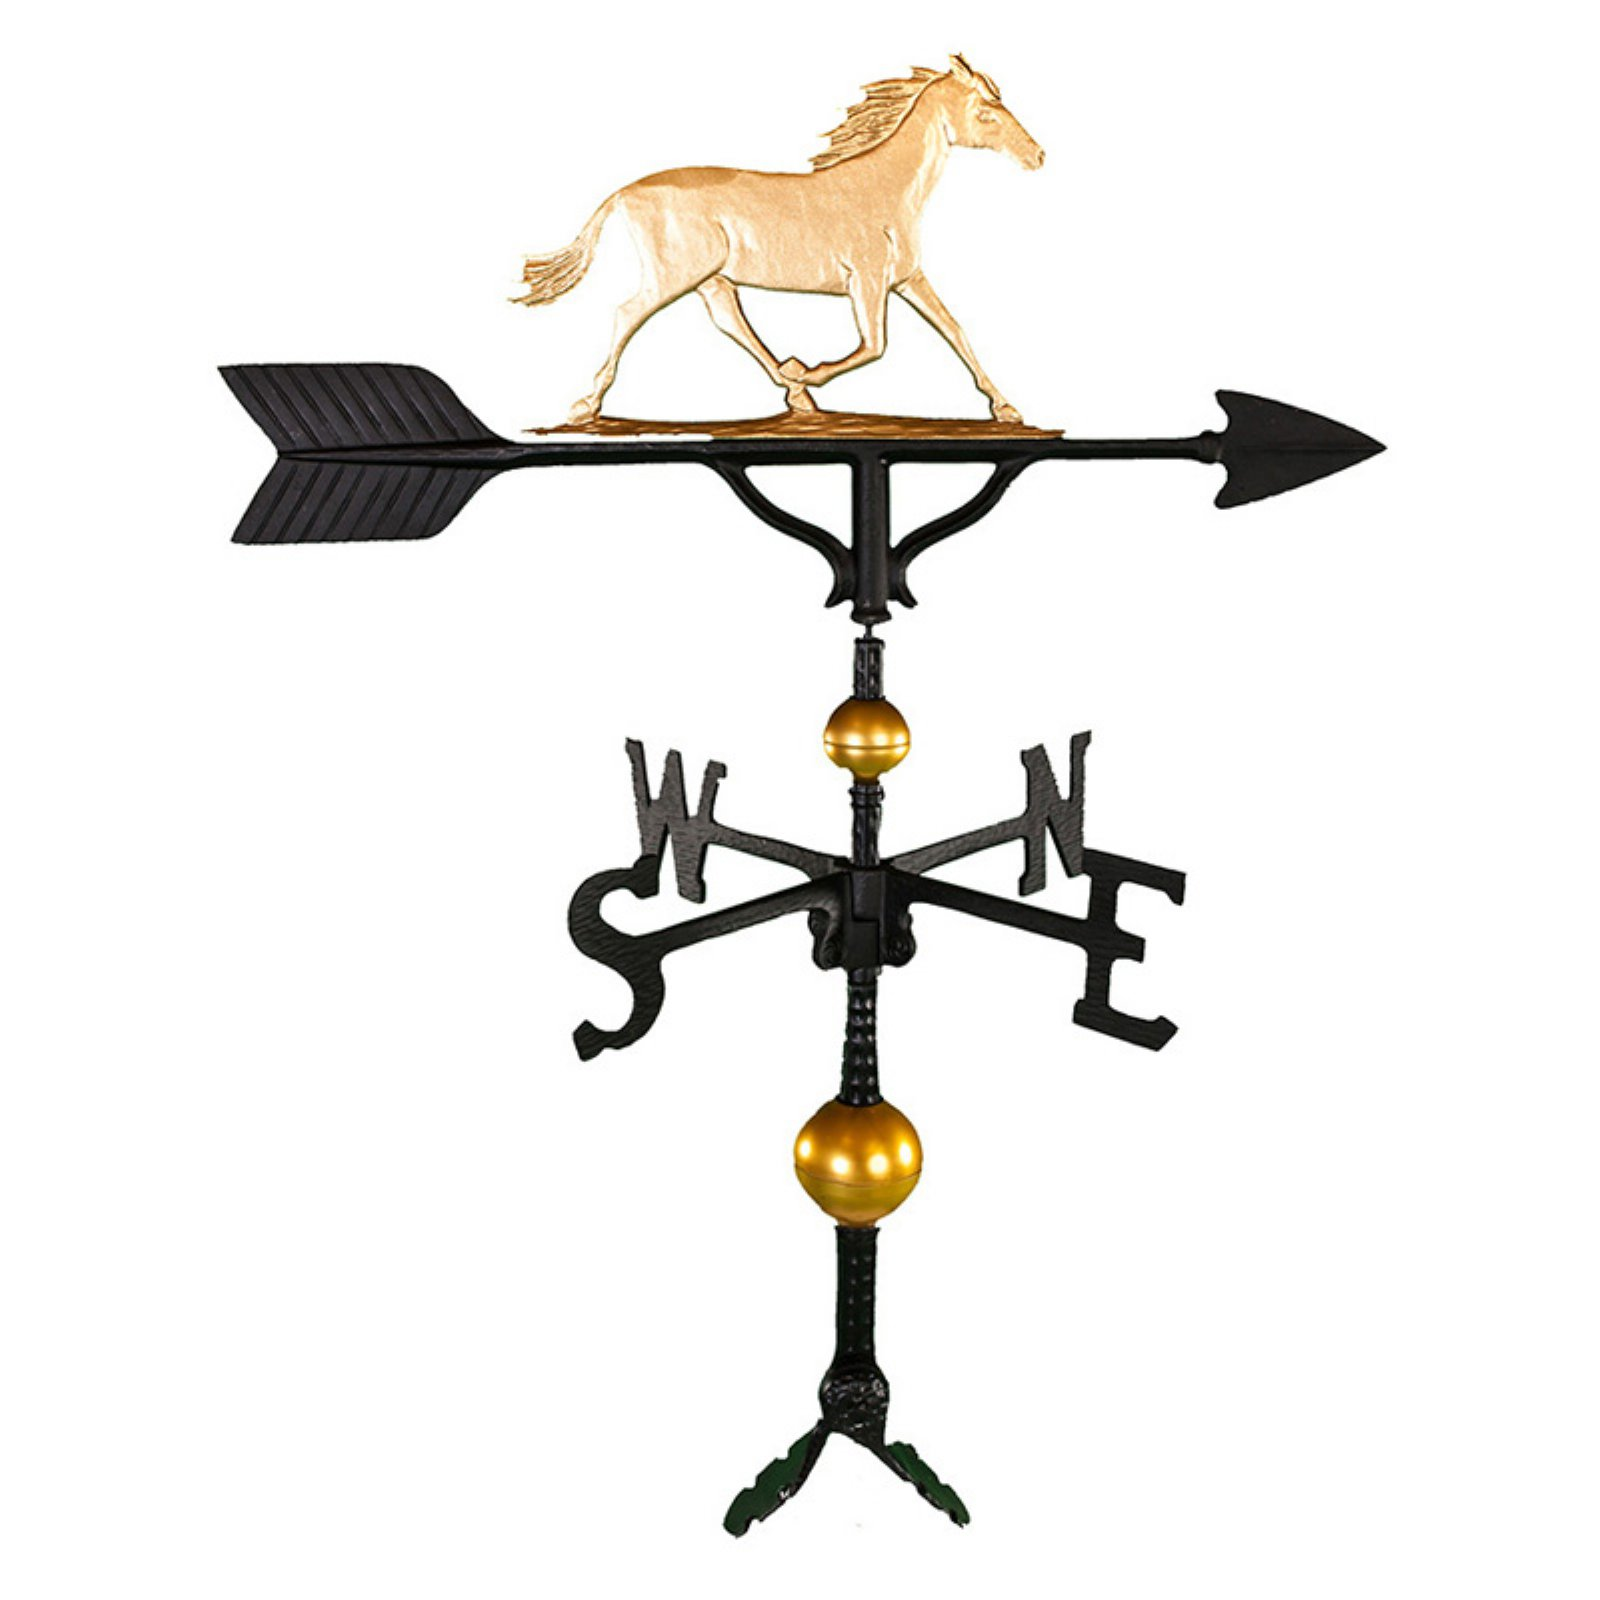 Deluxe Gold Horse Weathervane 32 in. by Montague Metal Products